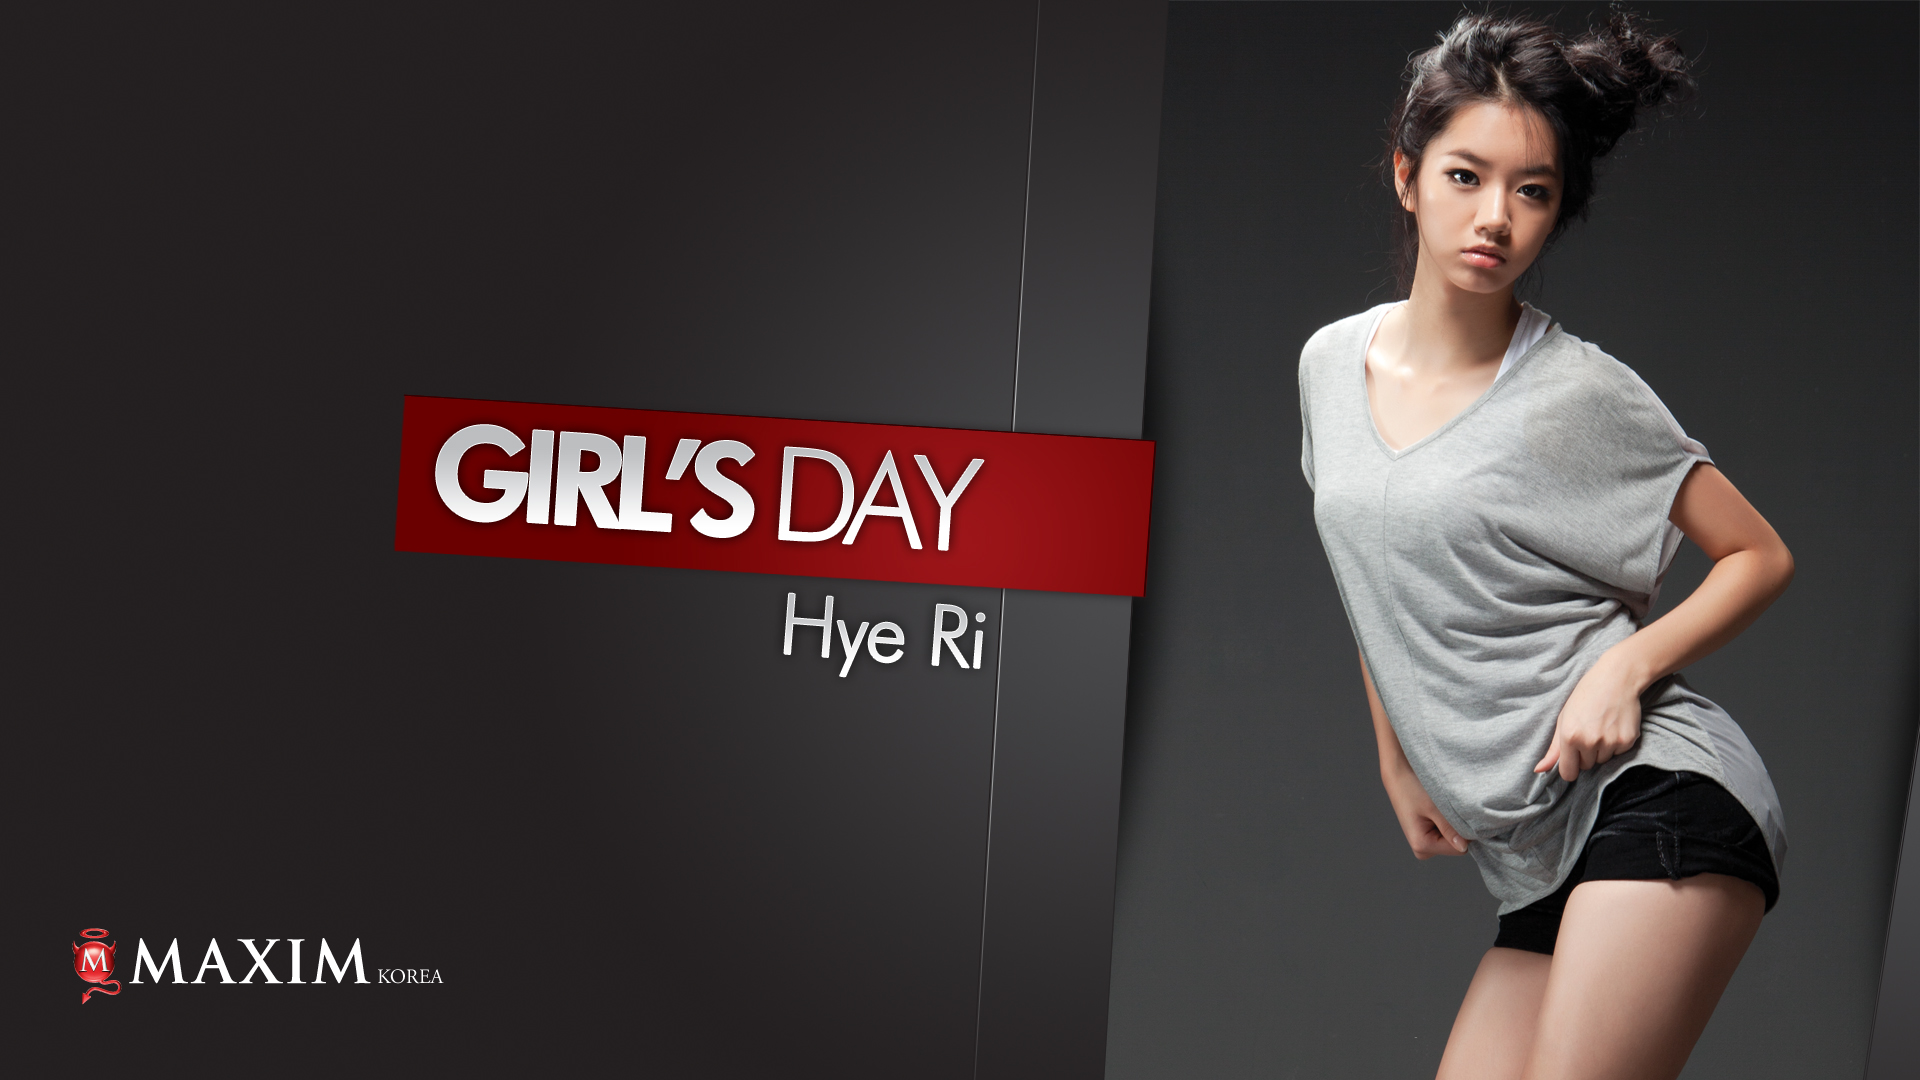 Wallpapers girls day official wallpaper from maxim korea 1280 download wallpaper 12801024 19201080 voltagebd Images